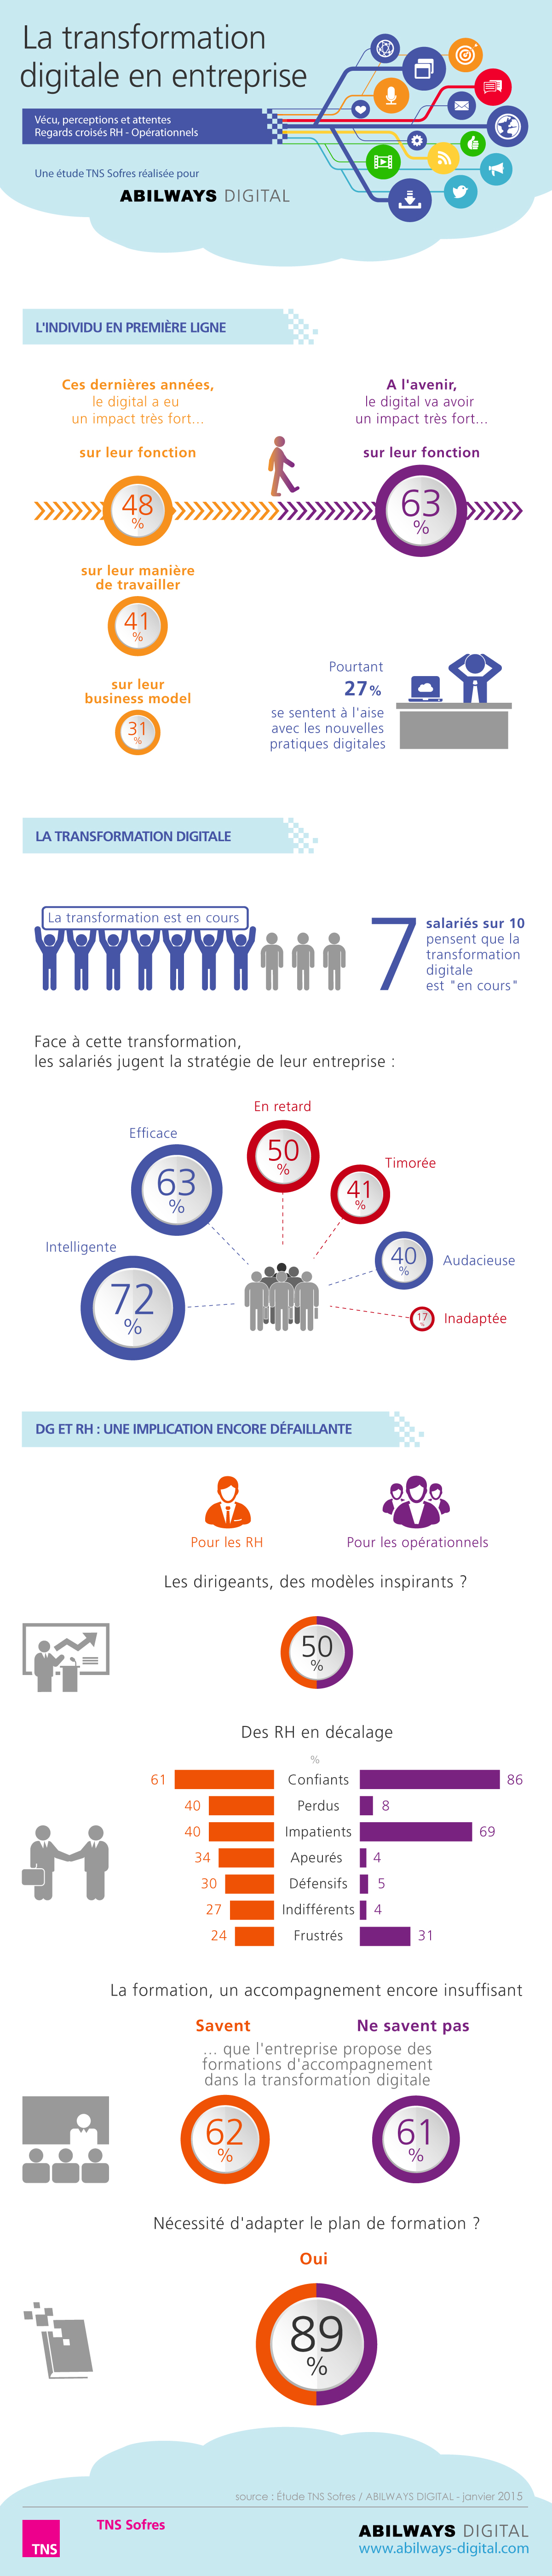 Business digital transformation infographic by Kantar's TNS Sofres